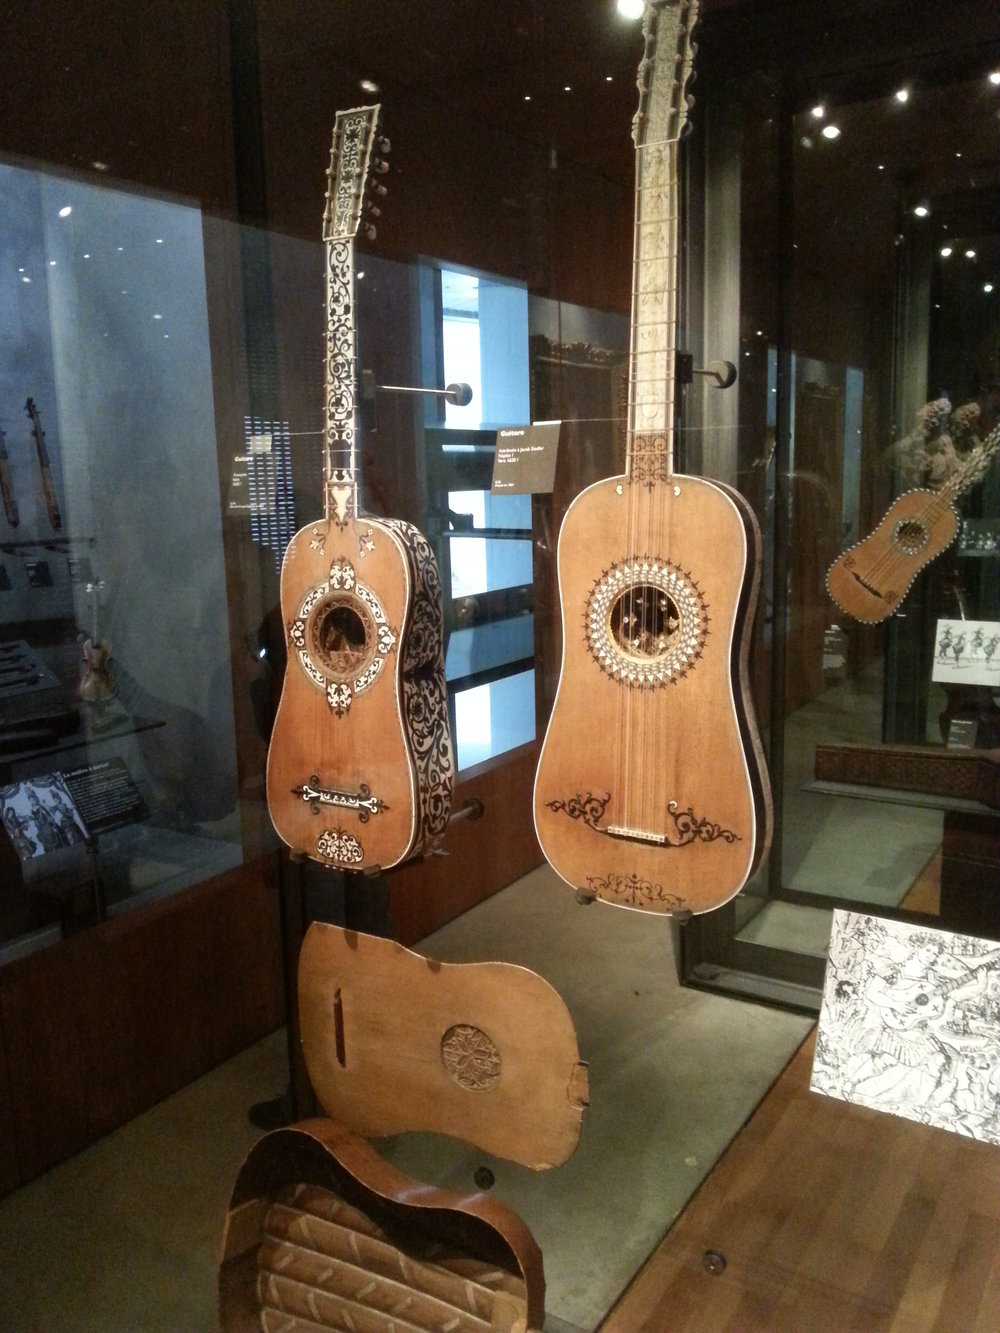 More Baroque guitars!